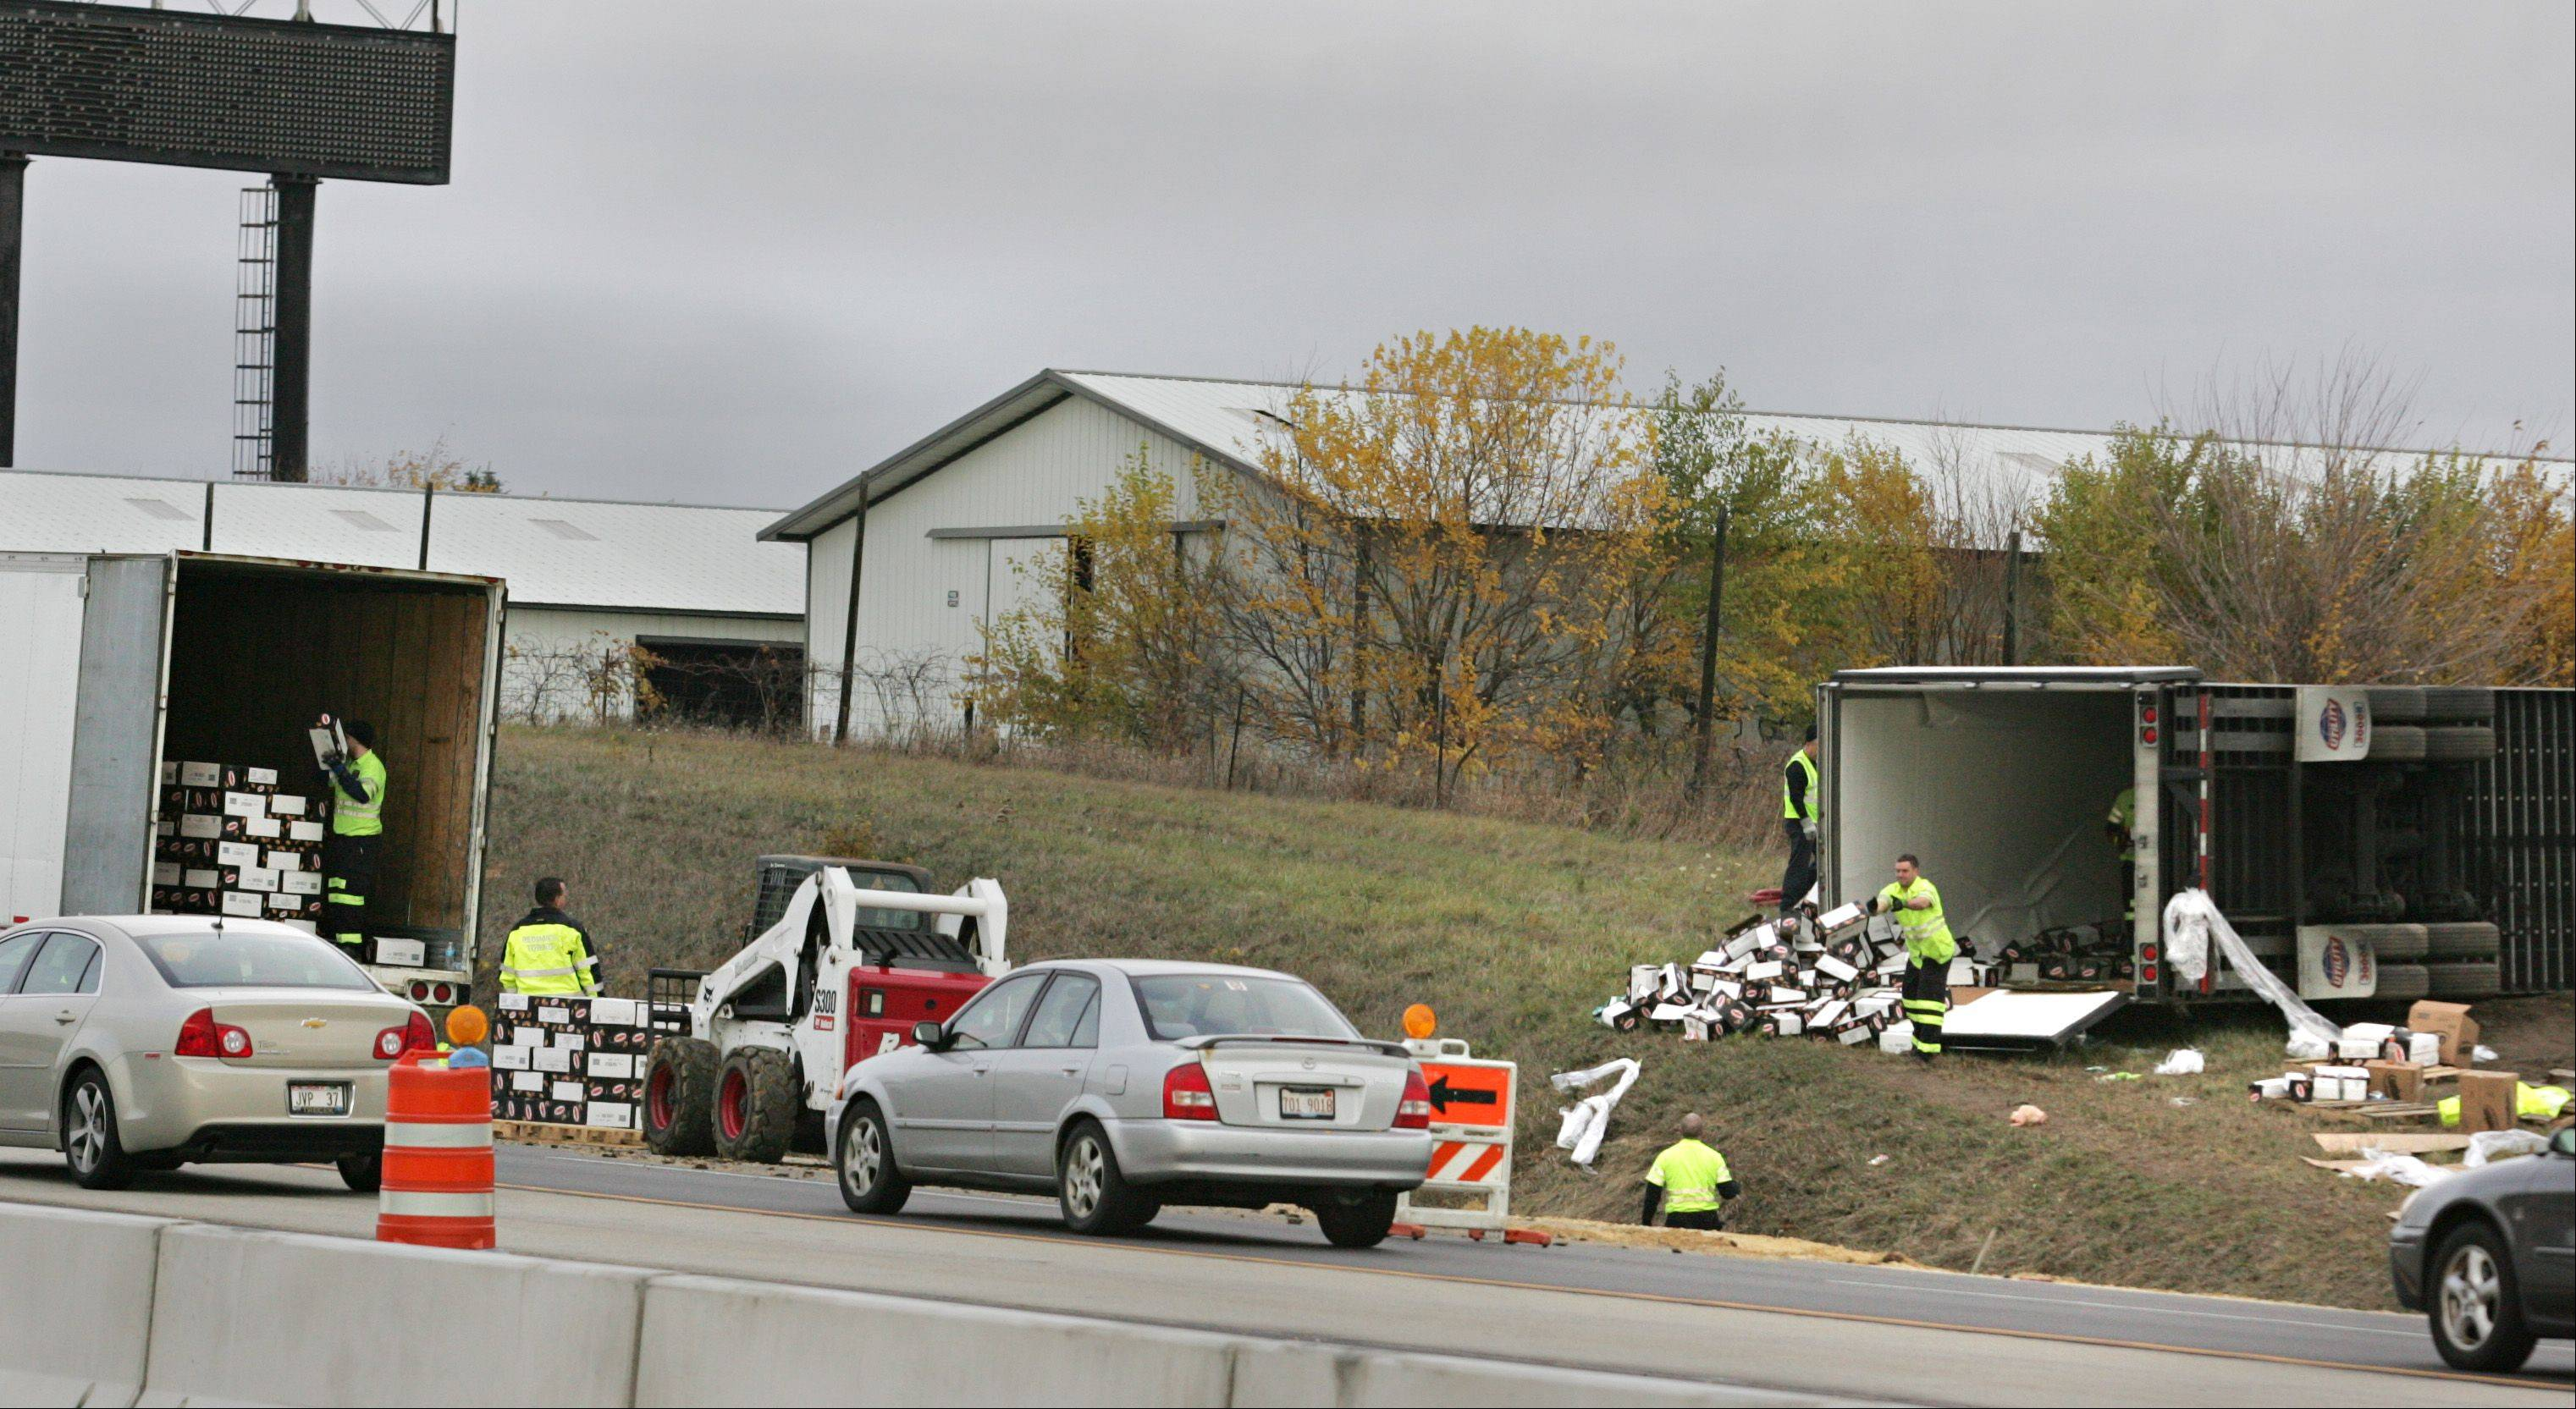 IDOT emergency crews unload boxes from a tractor trailer that crashed near the westbound lanes of the Jane Addams Tollway Thursday morning near Hampshire. The truck ended up well off the north side of the roadway, roughly one half mile before the exit to Route 20.